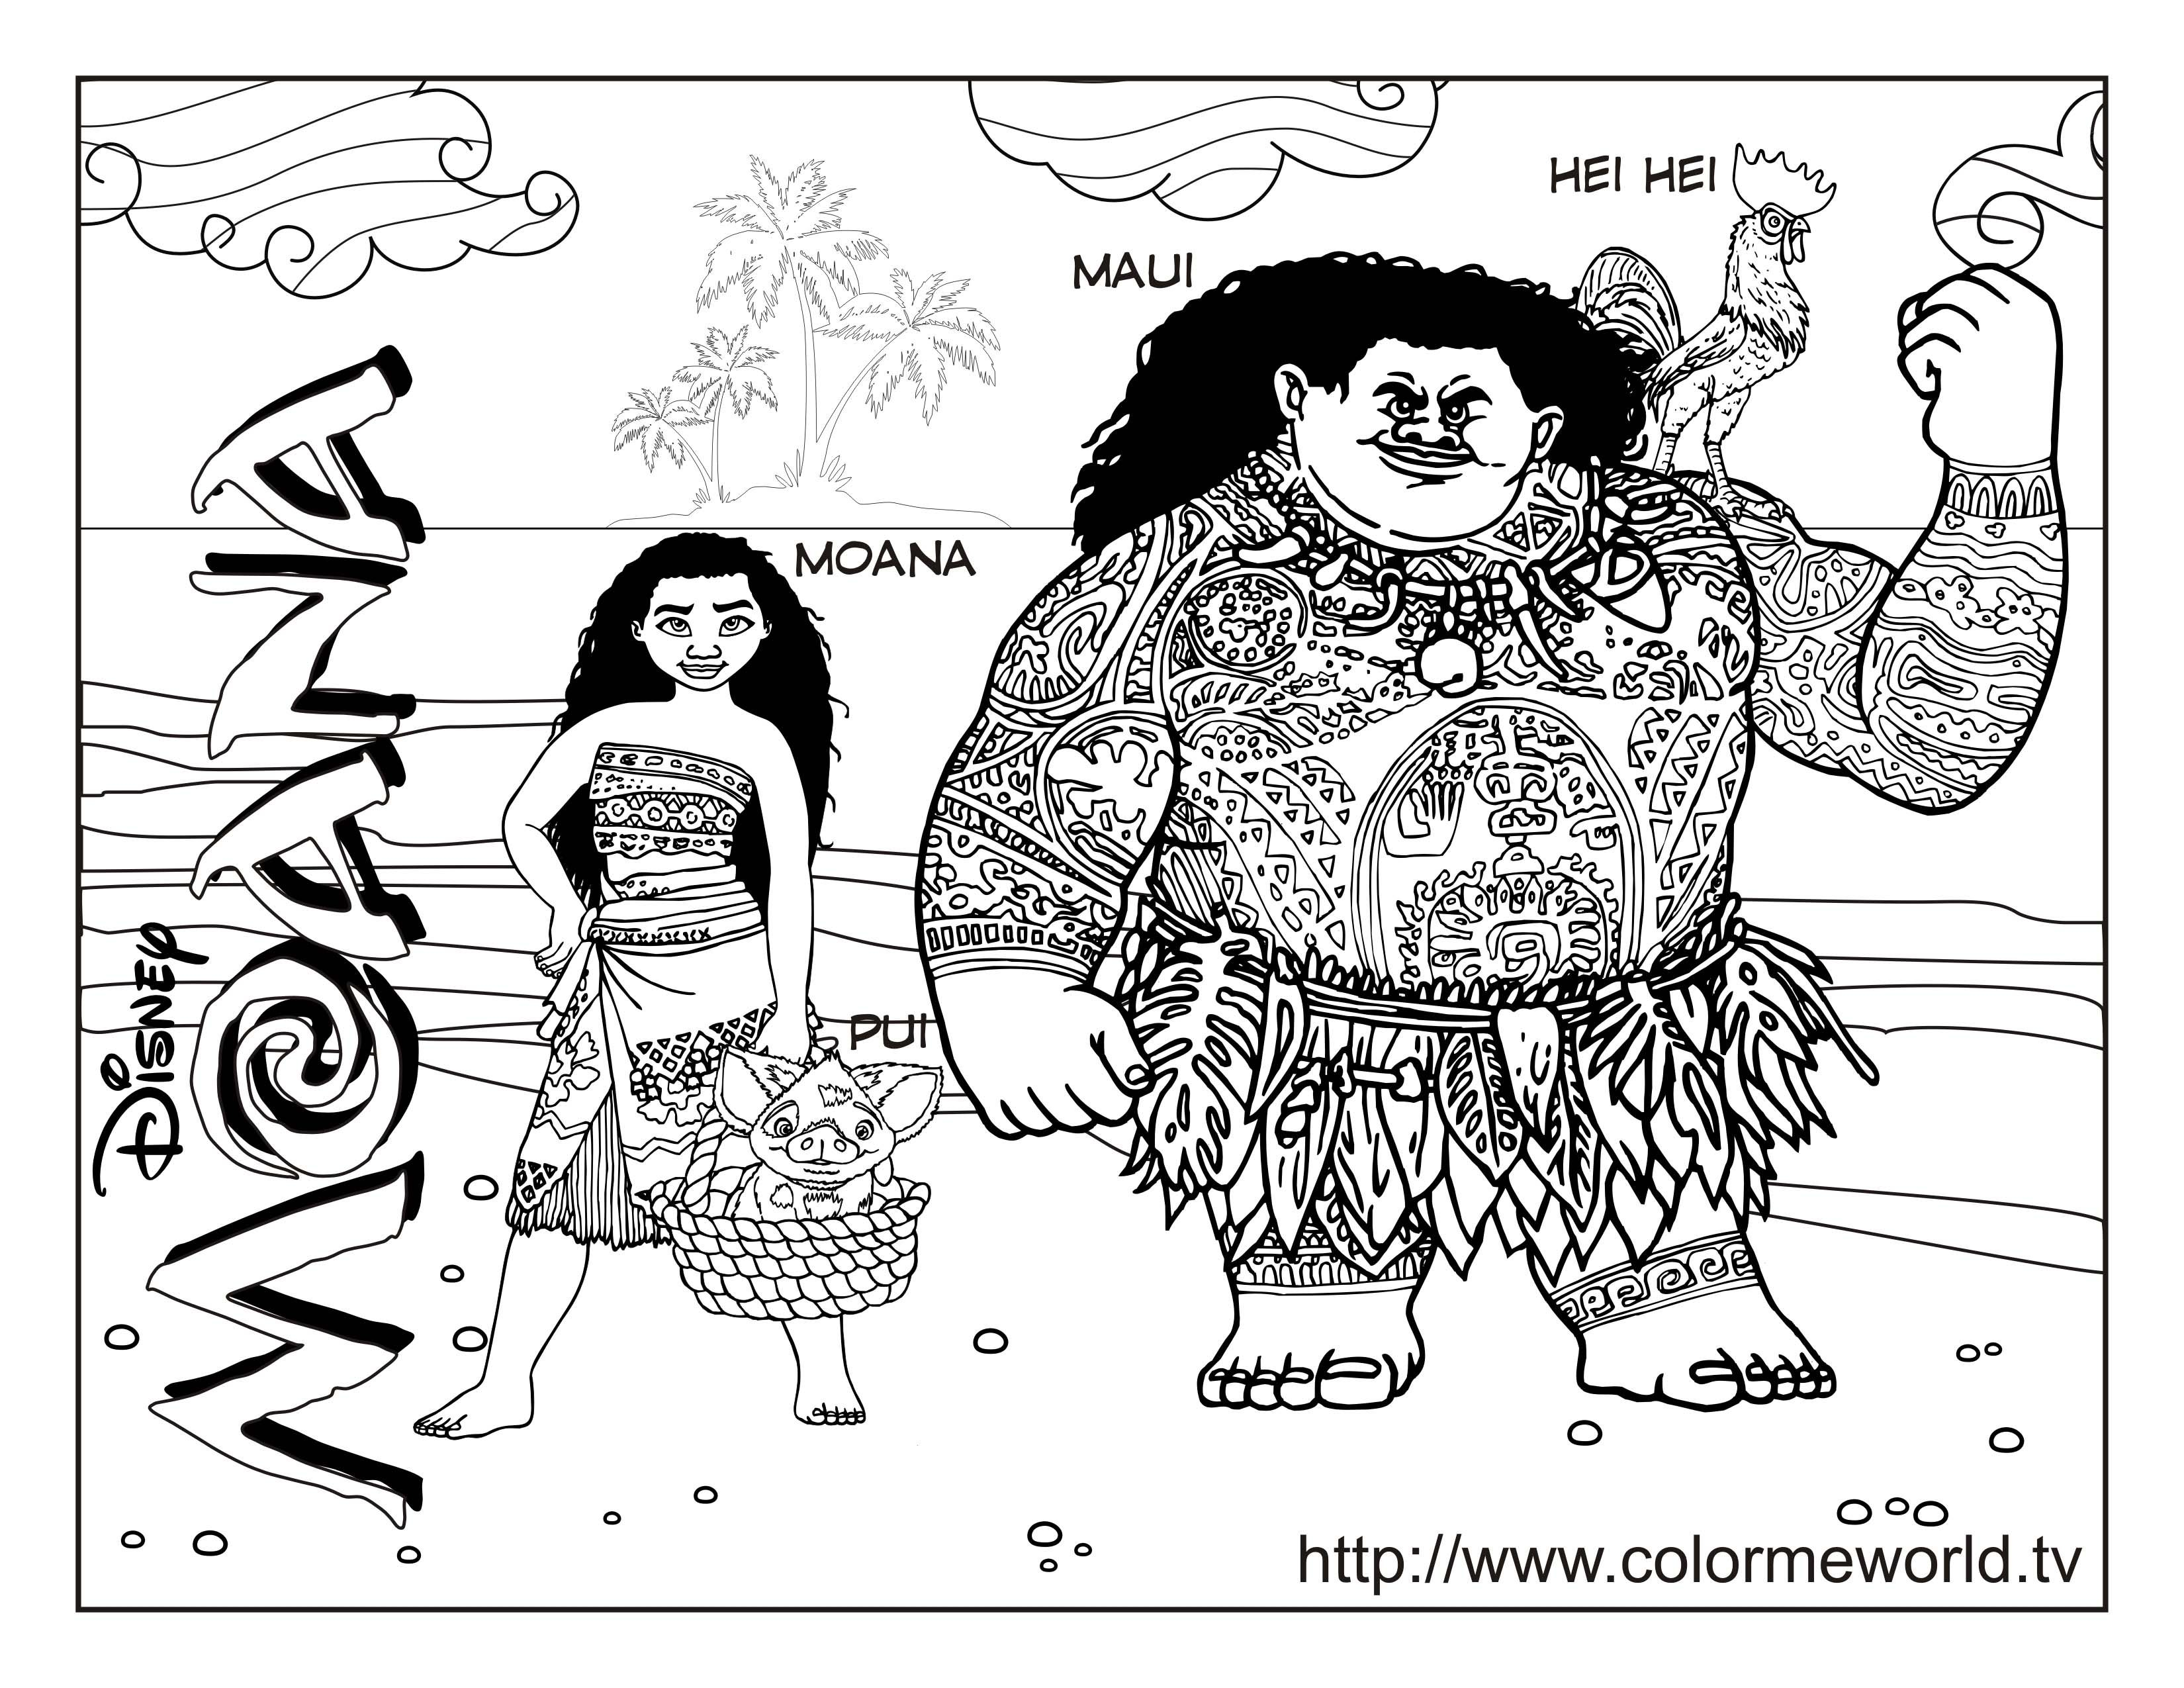 Moana Coloring Pages : Free Printable Moana PDF Coloring